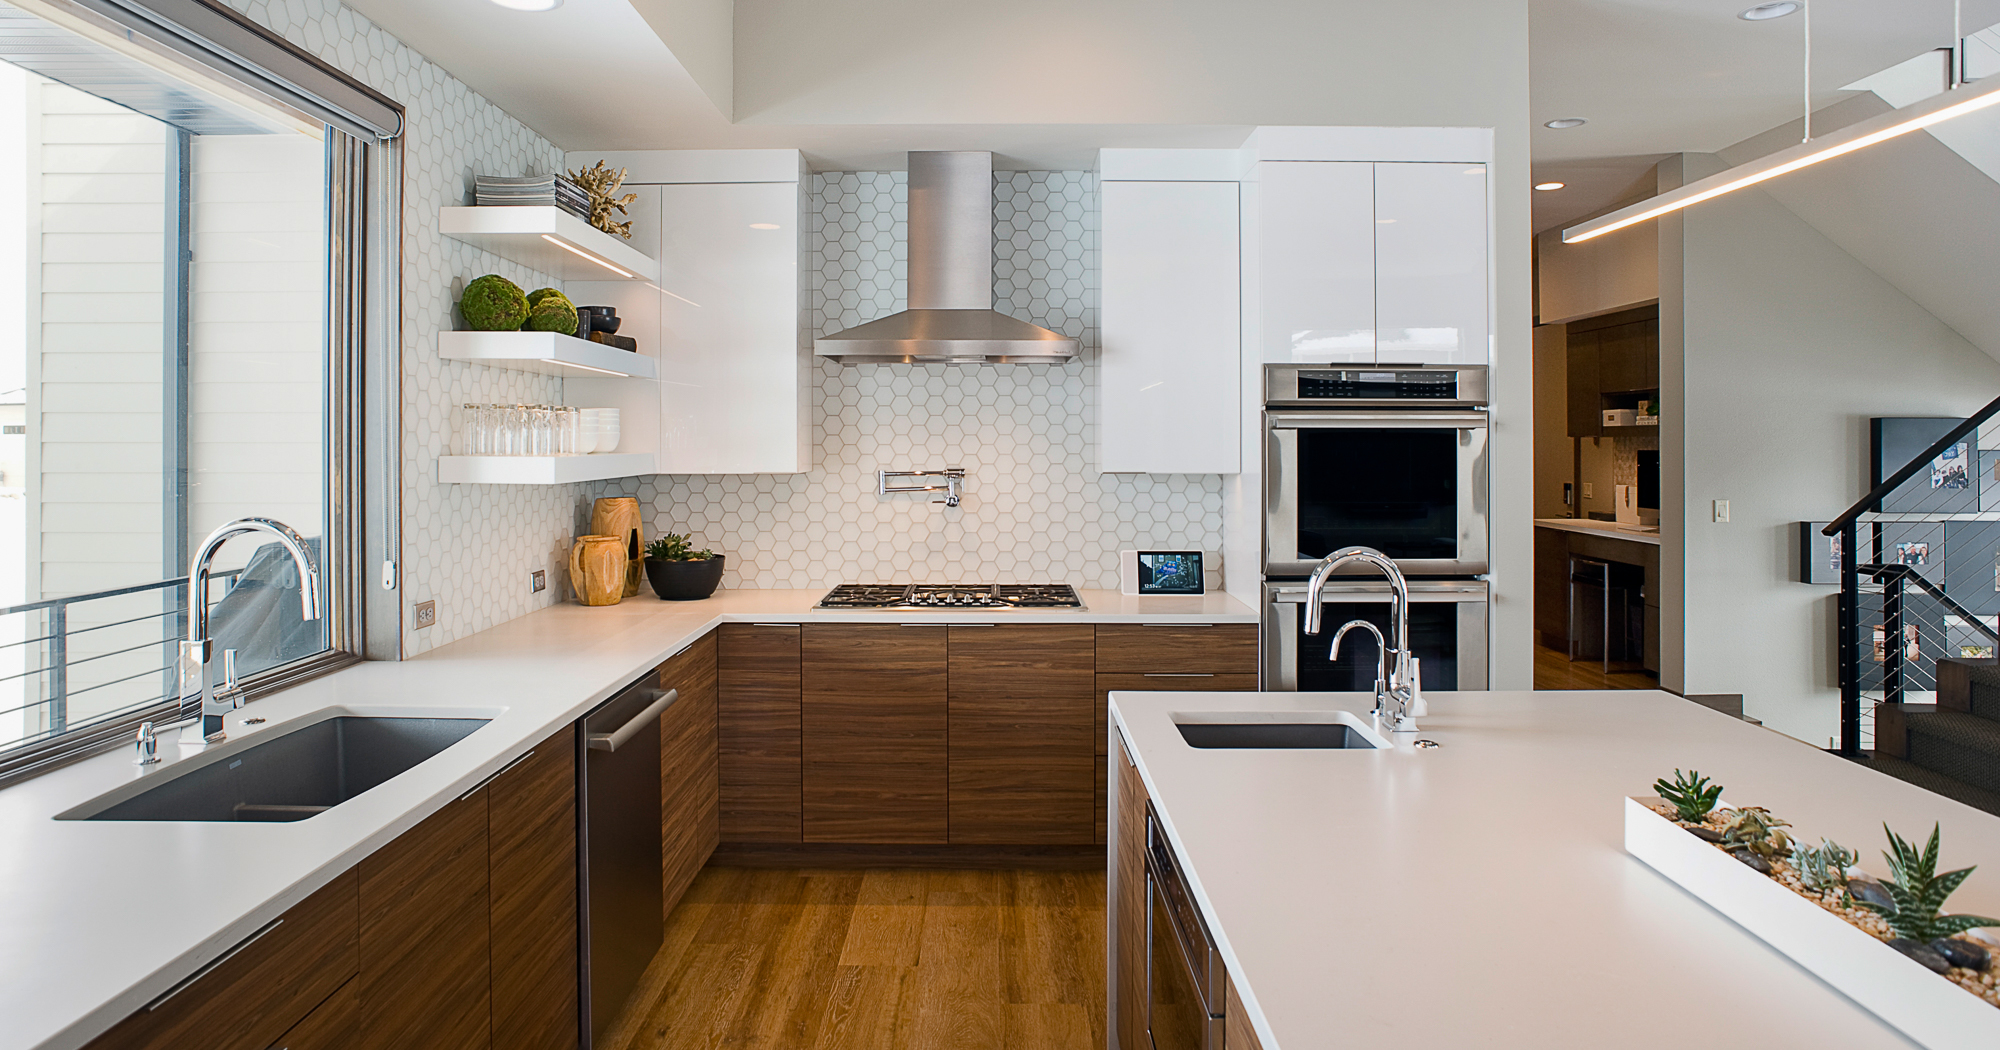 Contemporary kitchen with island featuring High Gloss White and Exotic Walnut textured melamine by ShowplaceEVO - view 1